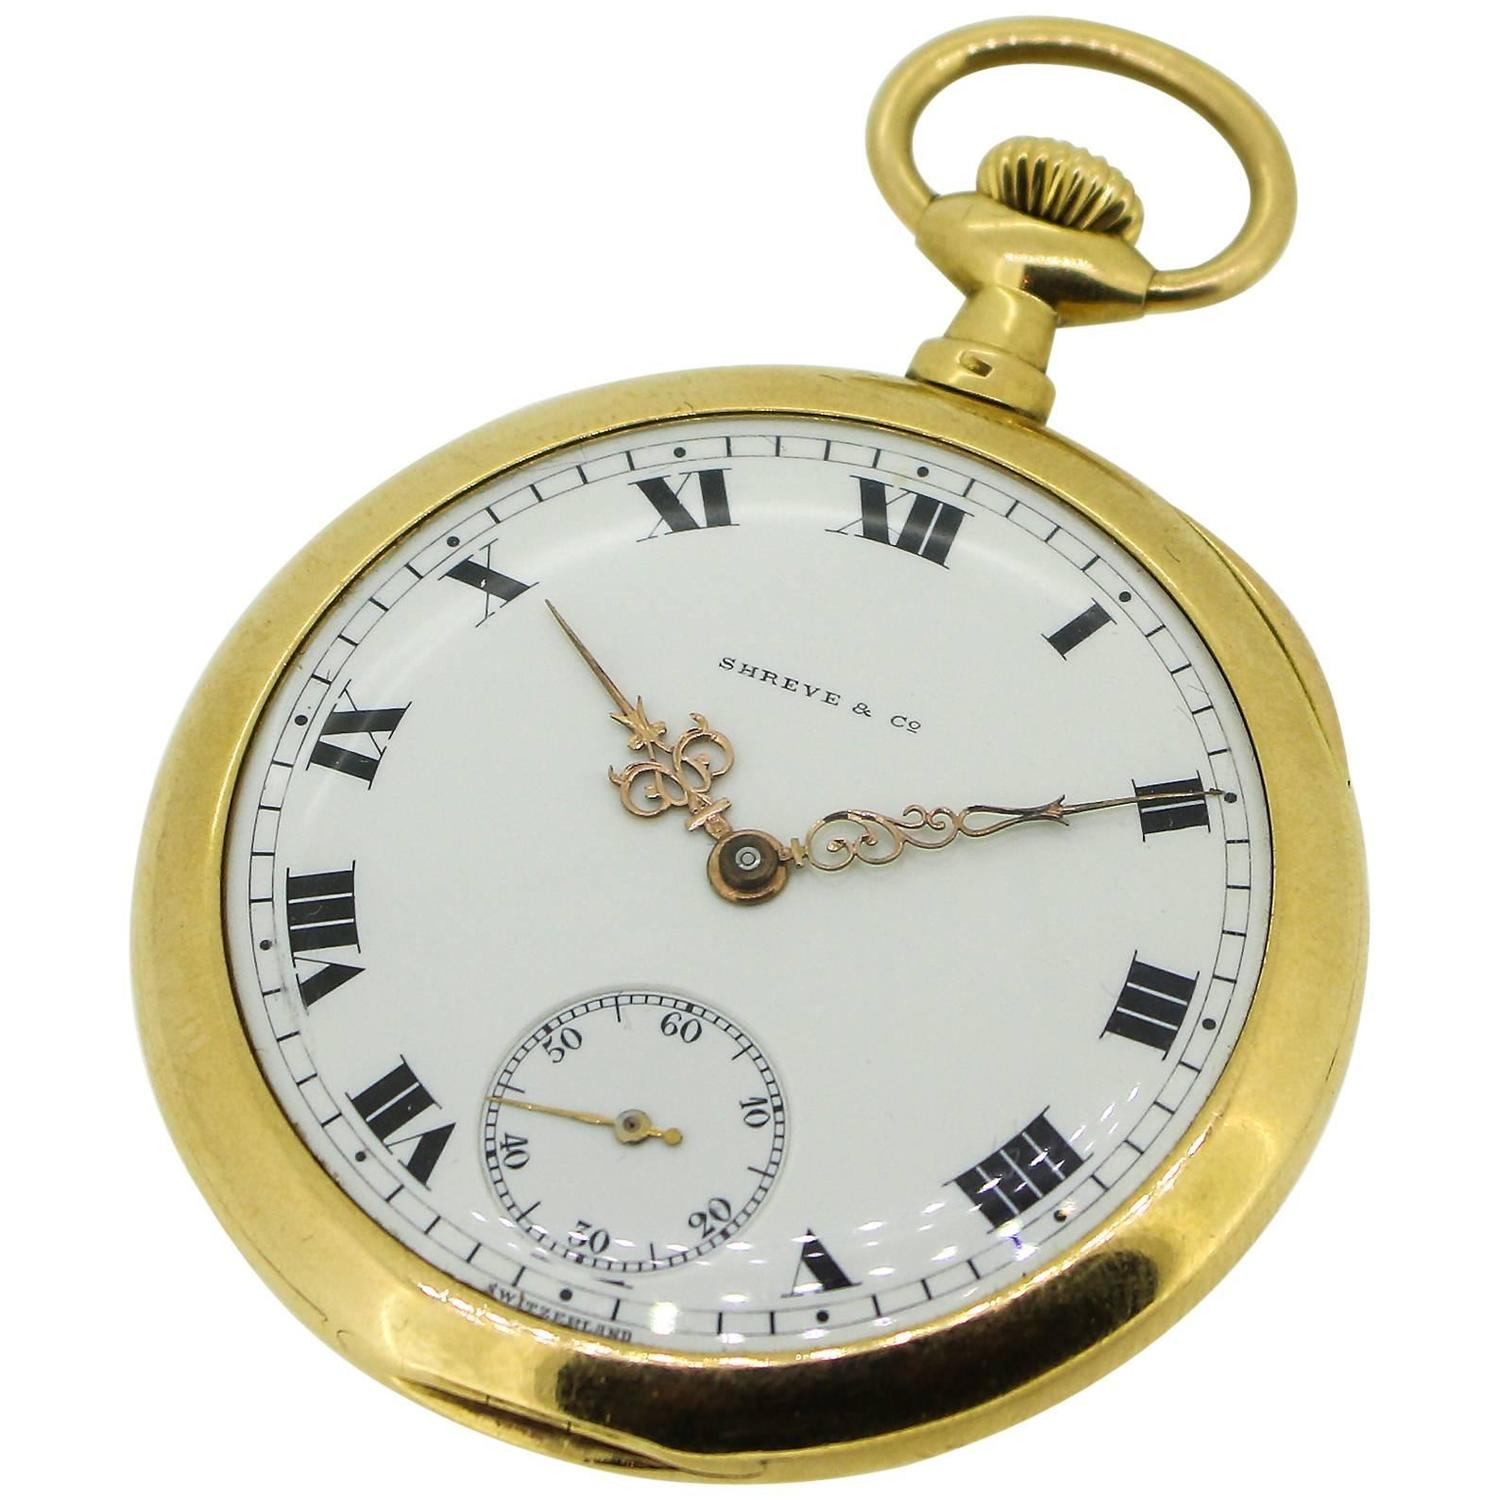 1905 patek philippe and shreve and co 18k yellow gold